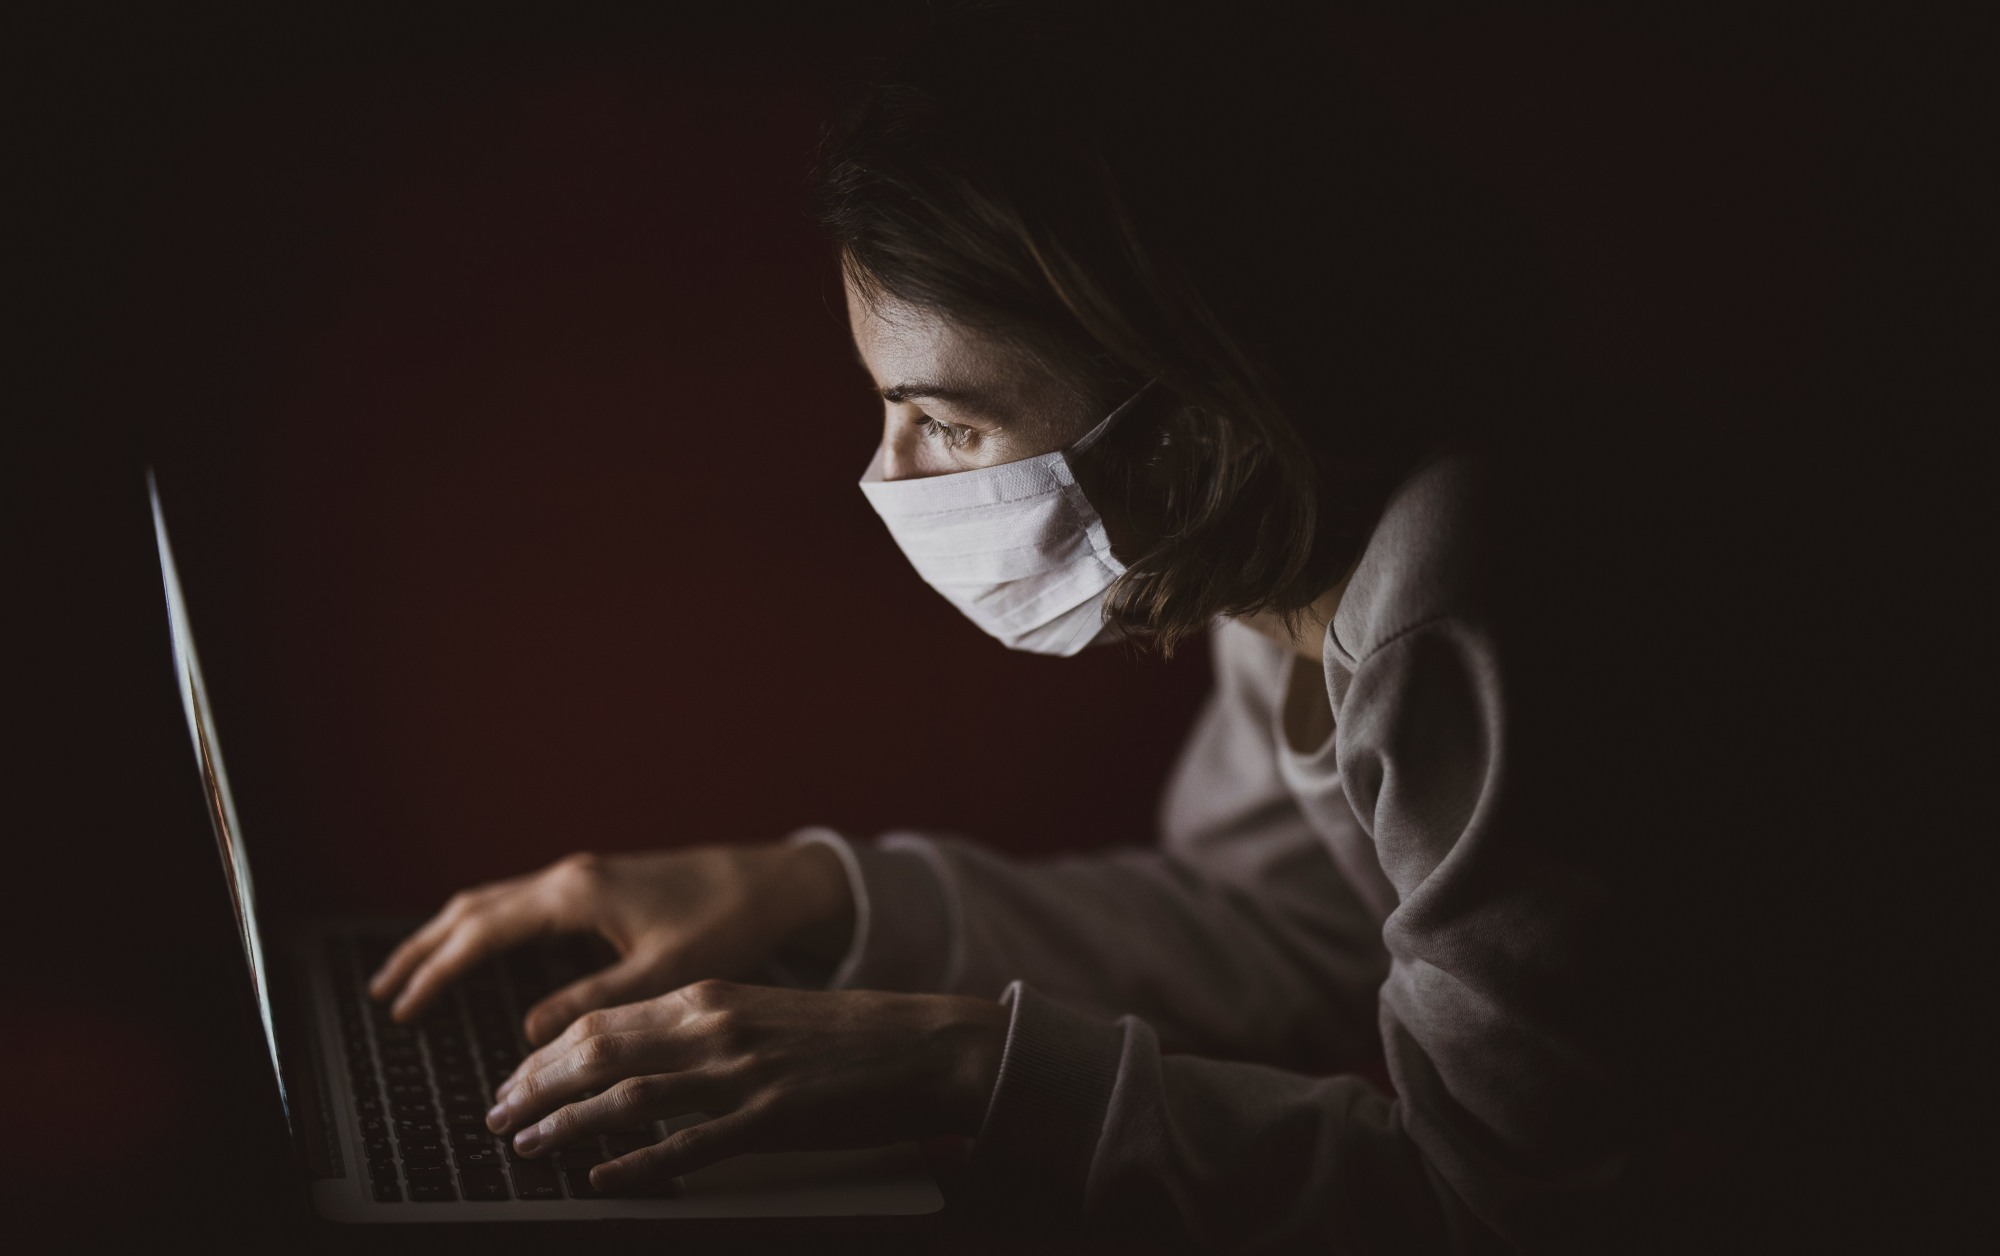 How Freelancers Can Stay Positive During The Coronavirus Lockdown